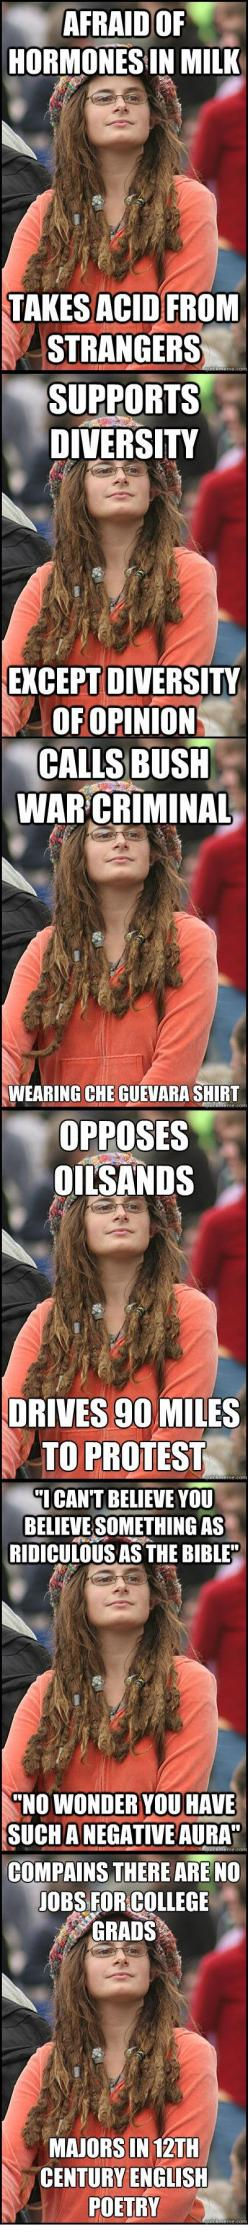 This is perfect.: Damn Hippies, Guy, Some People, Truth, College, So Funny, Liberal Logic, Haha So True